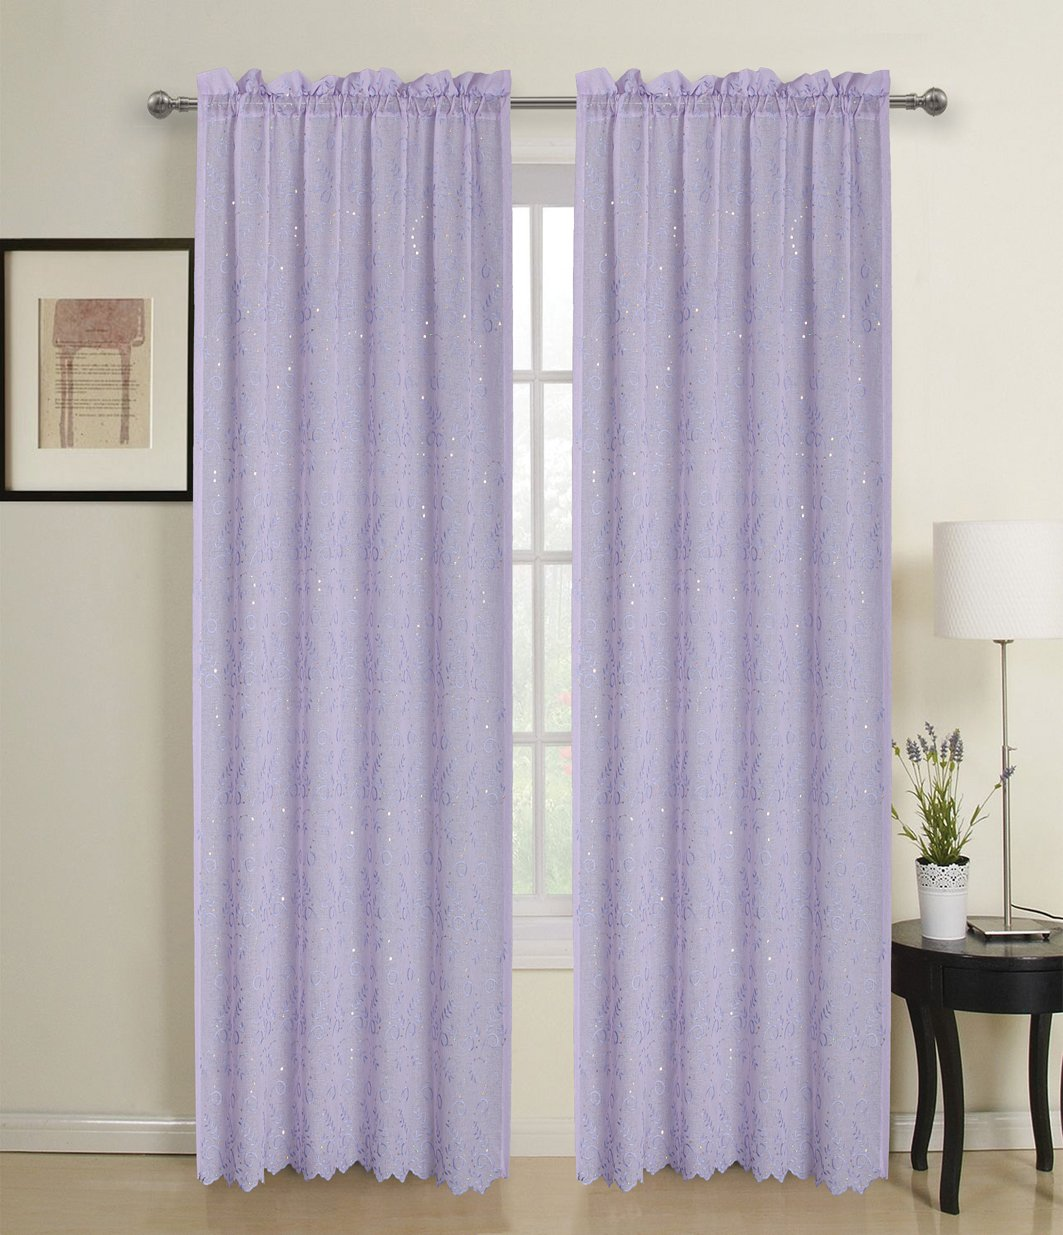 Cute Sheer Decorative Sparkle Lavender Blinds - 84 Inch - Window Treatments For Girls Bedroom ...